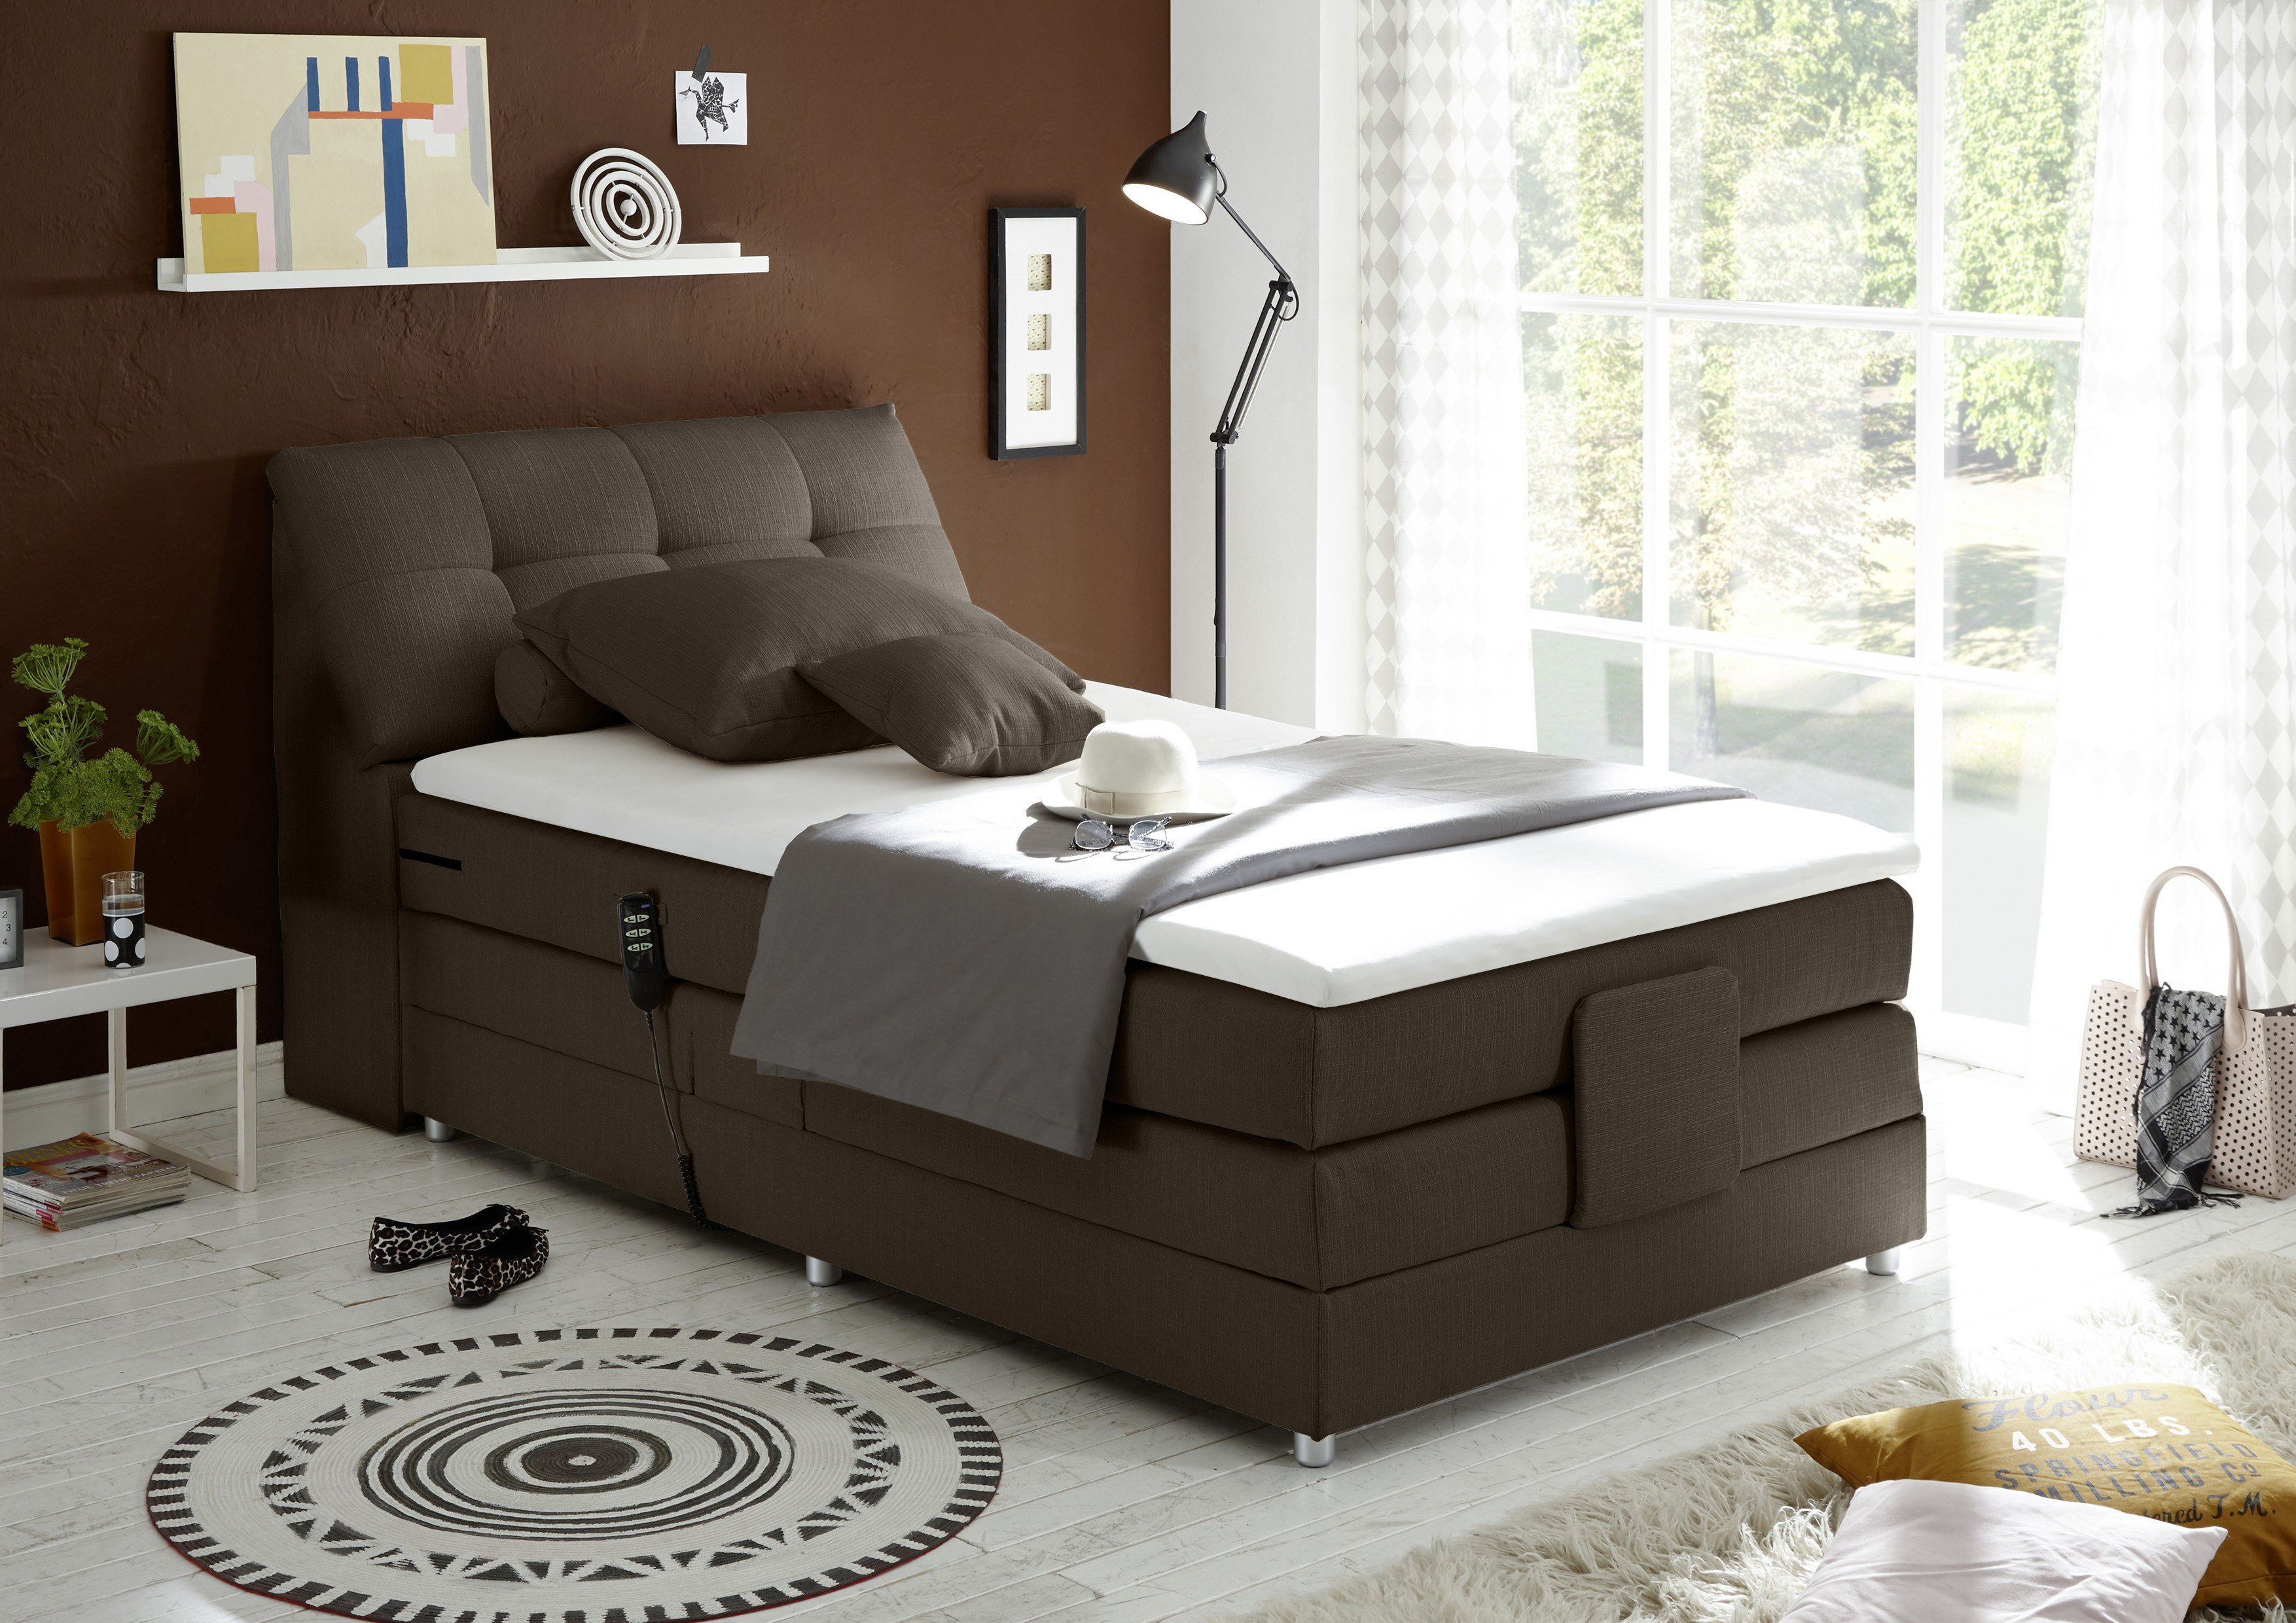 boxspringbett black red white concord annabell mit motor m bel letz ihr online shop. Black Bedroom Furniture Sets. Home Design Ideas